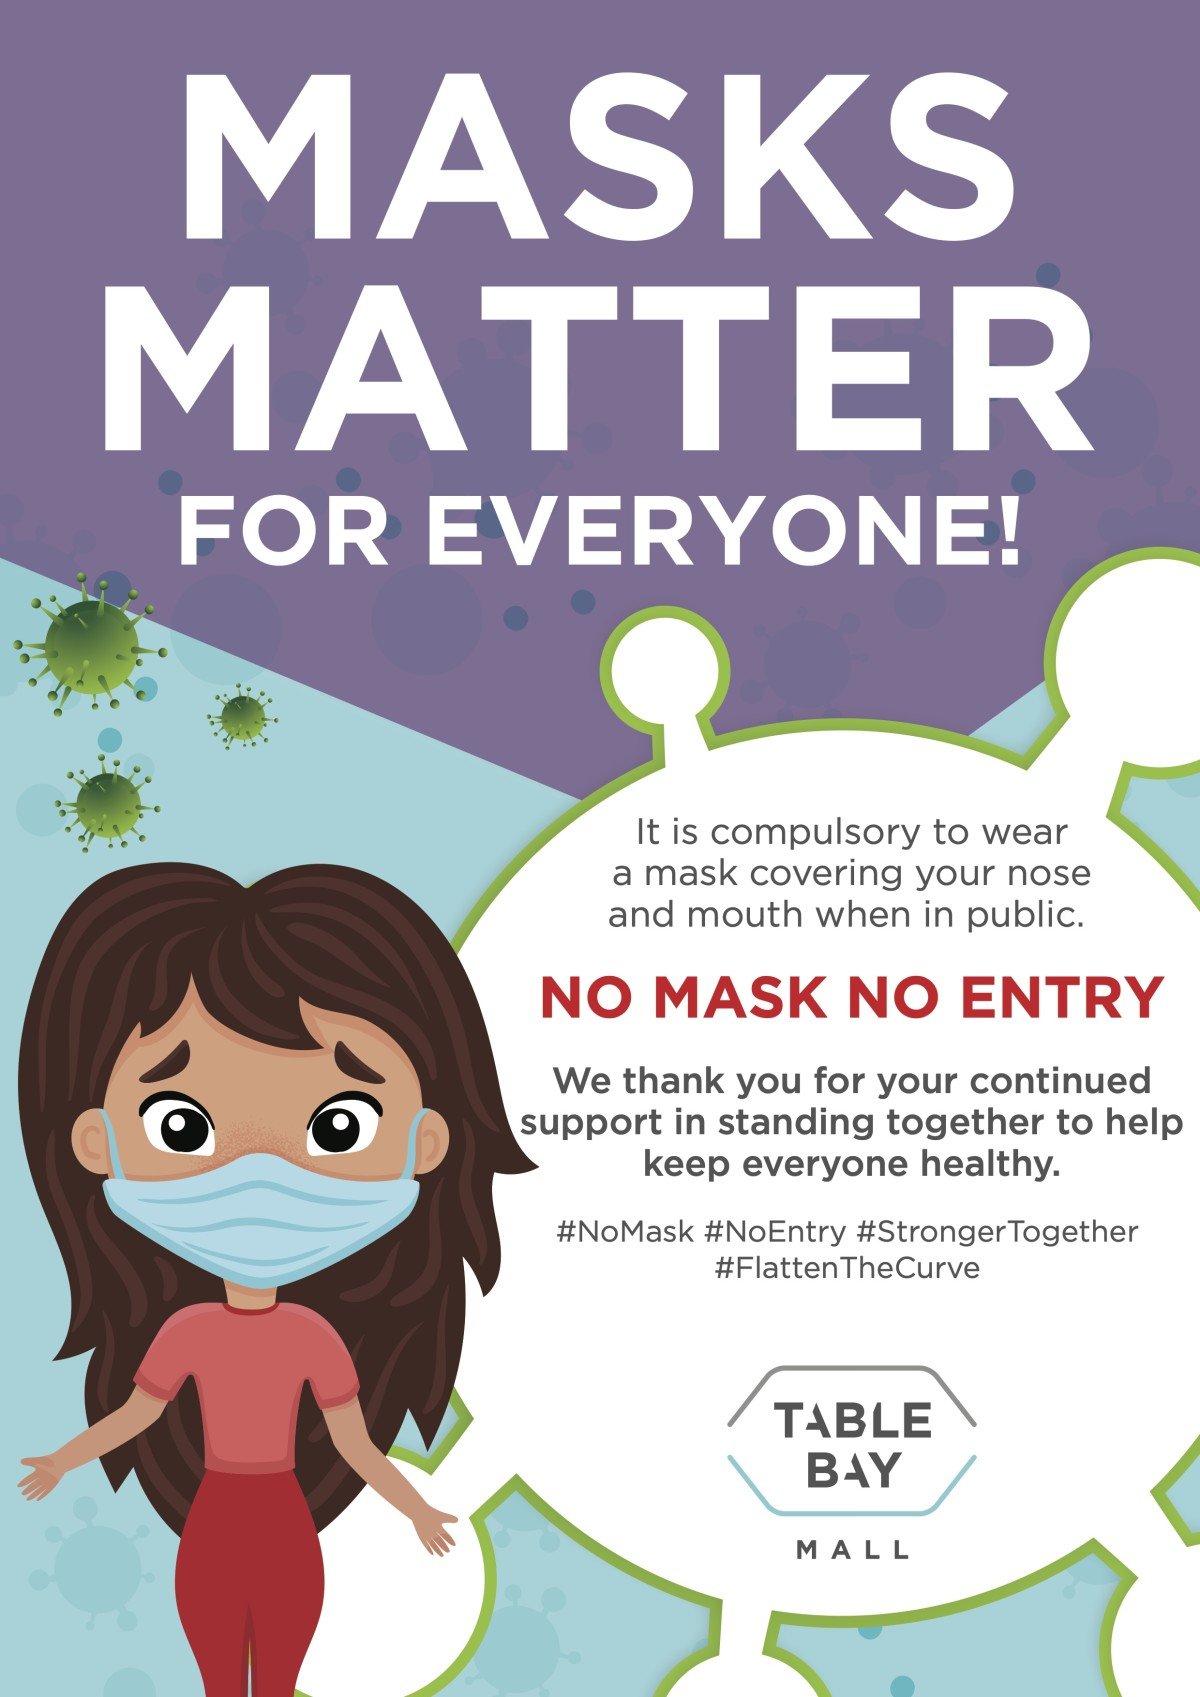 Masks matter for everyone